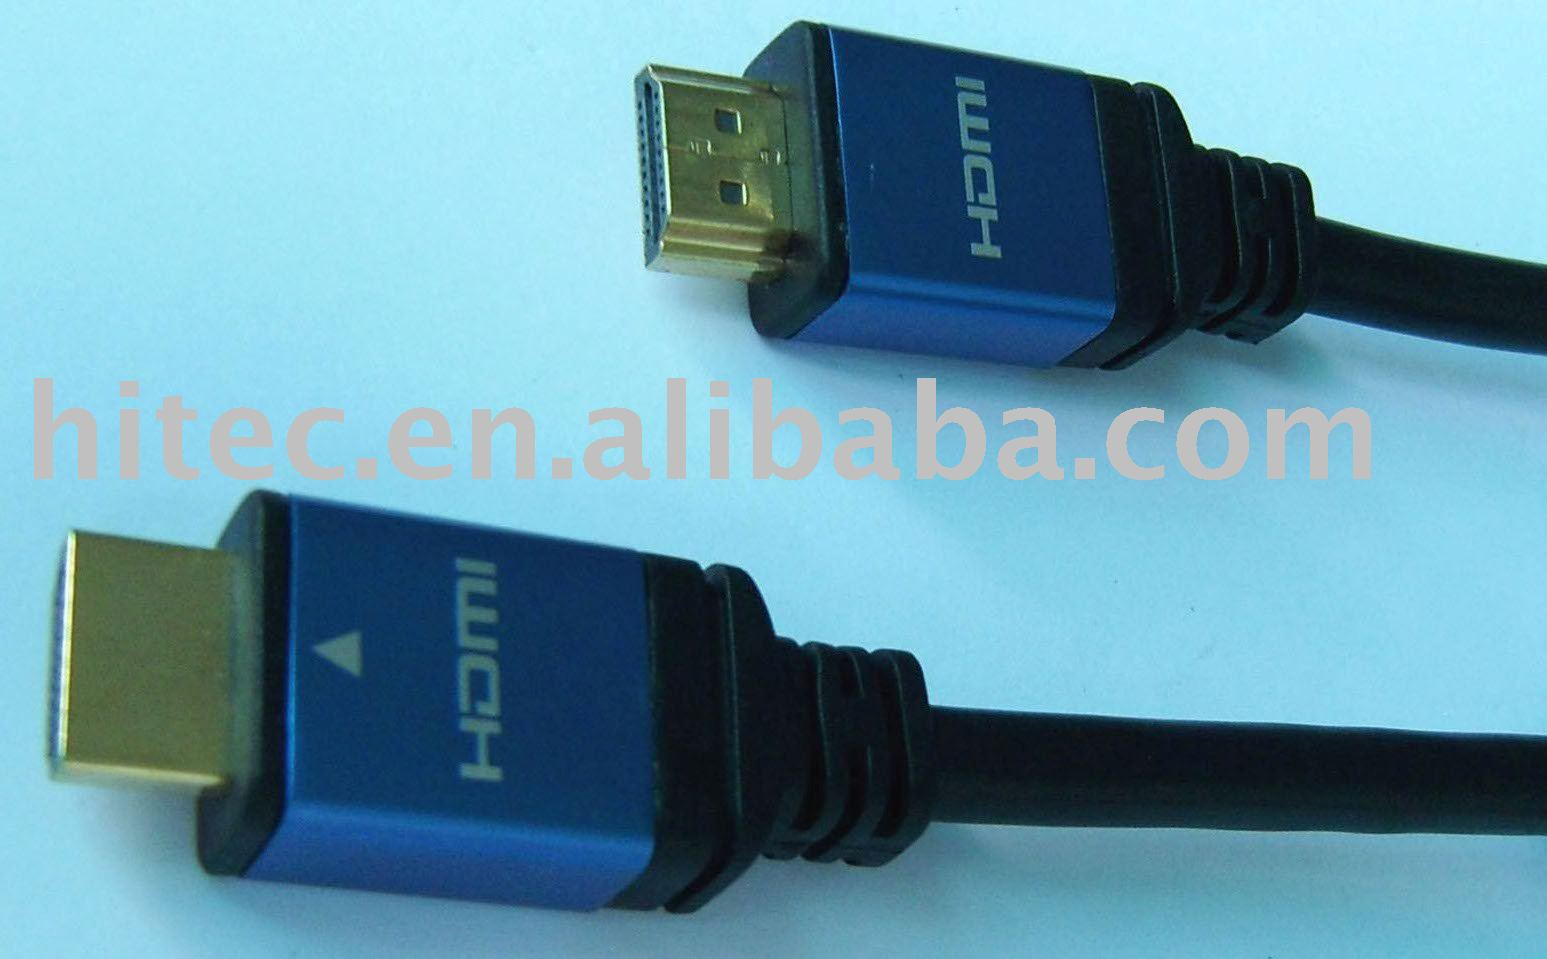 19 pin male to male 1.4v hdmi cable